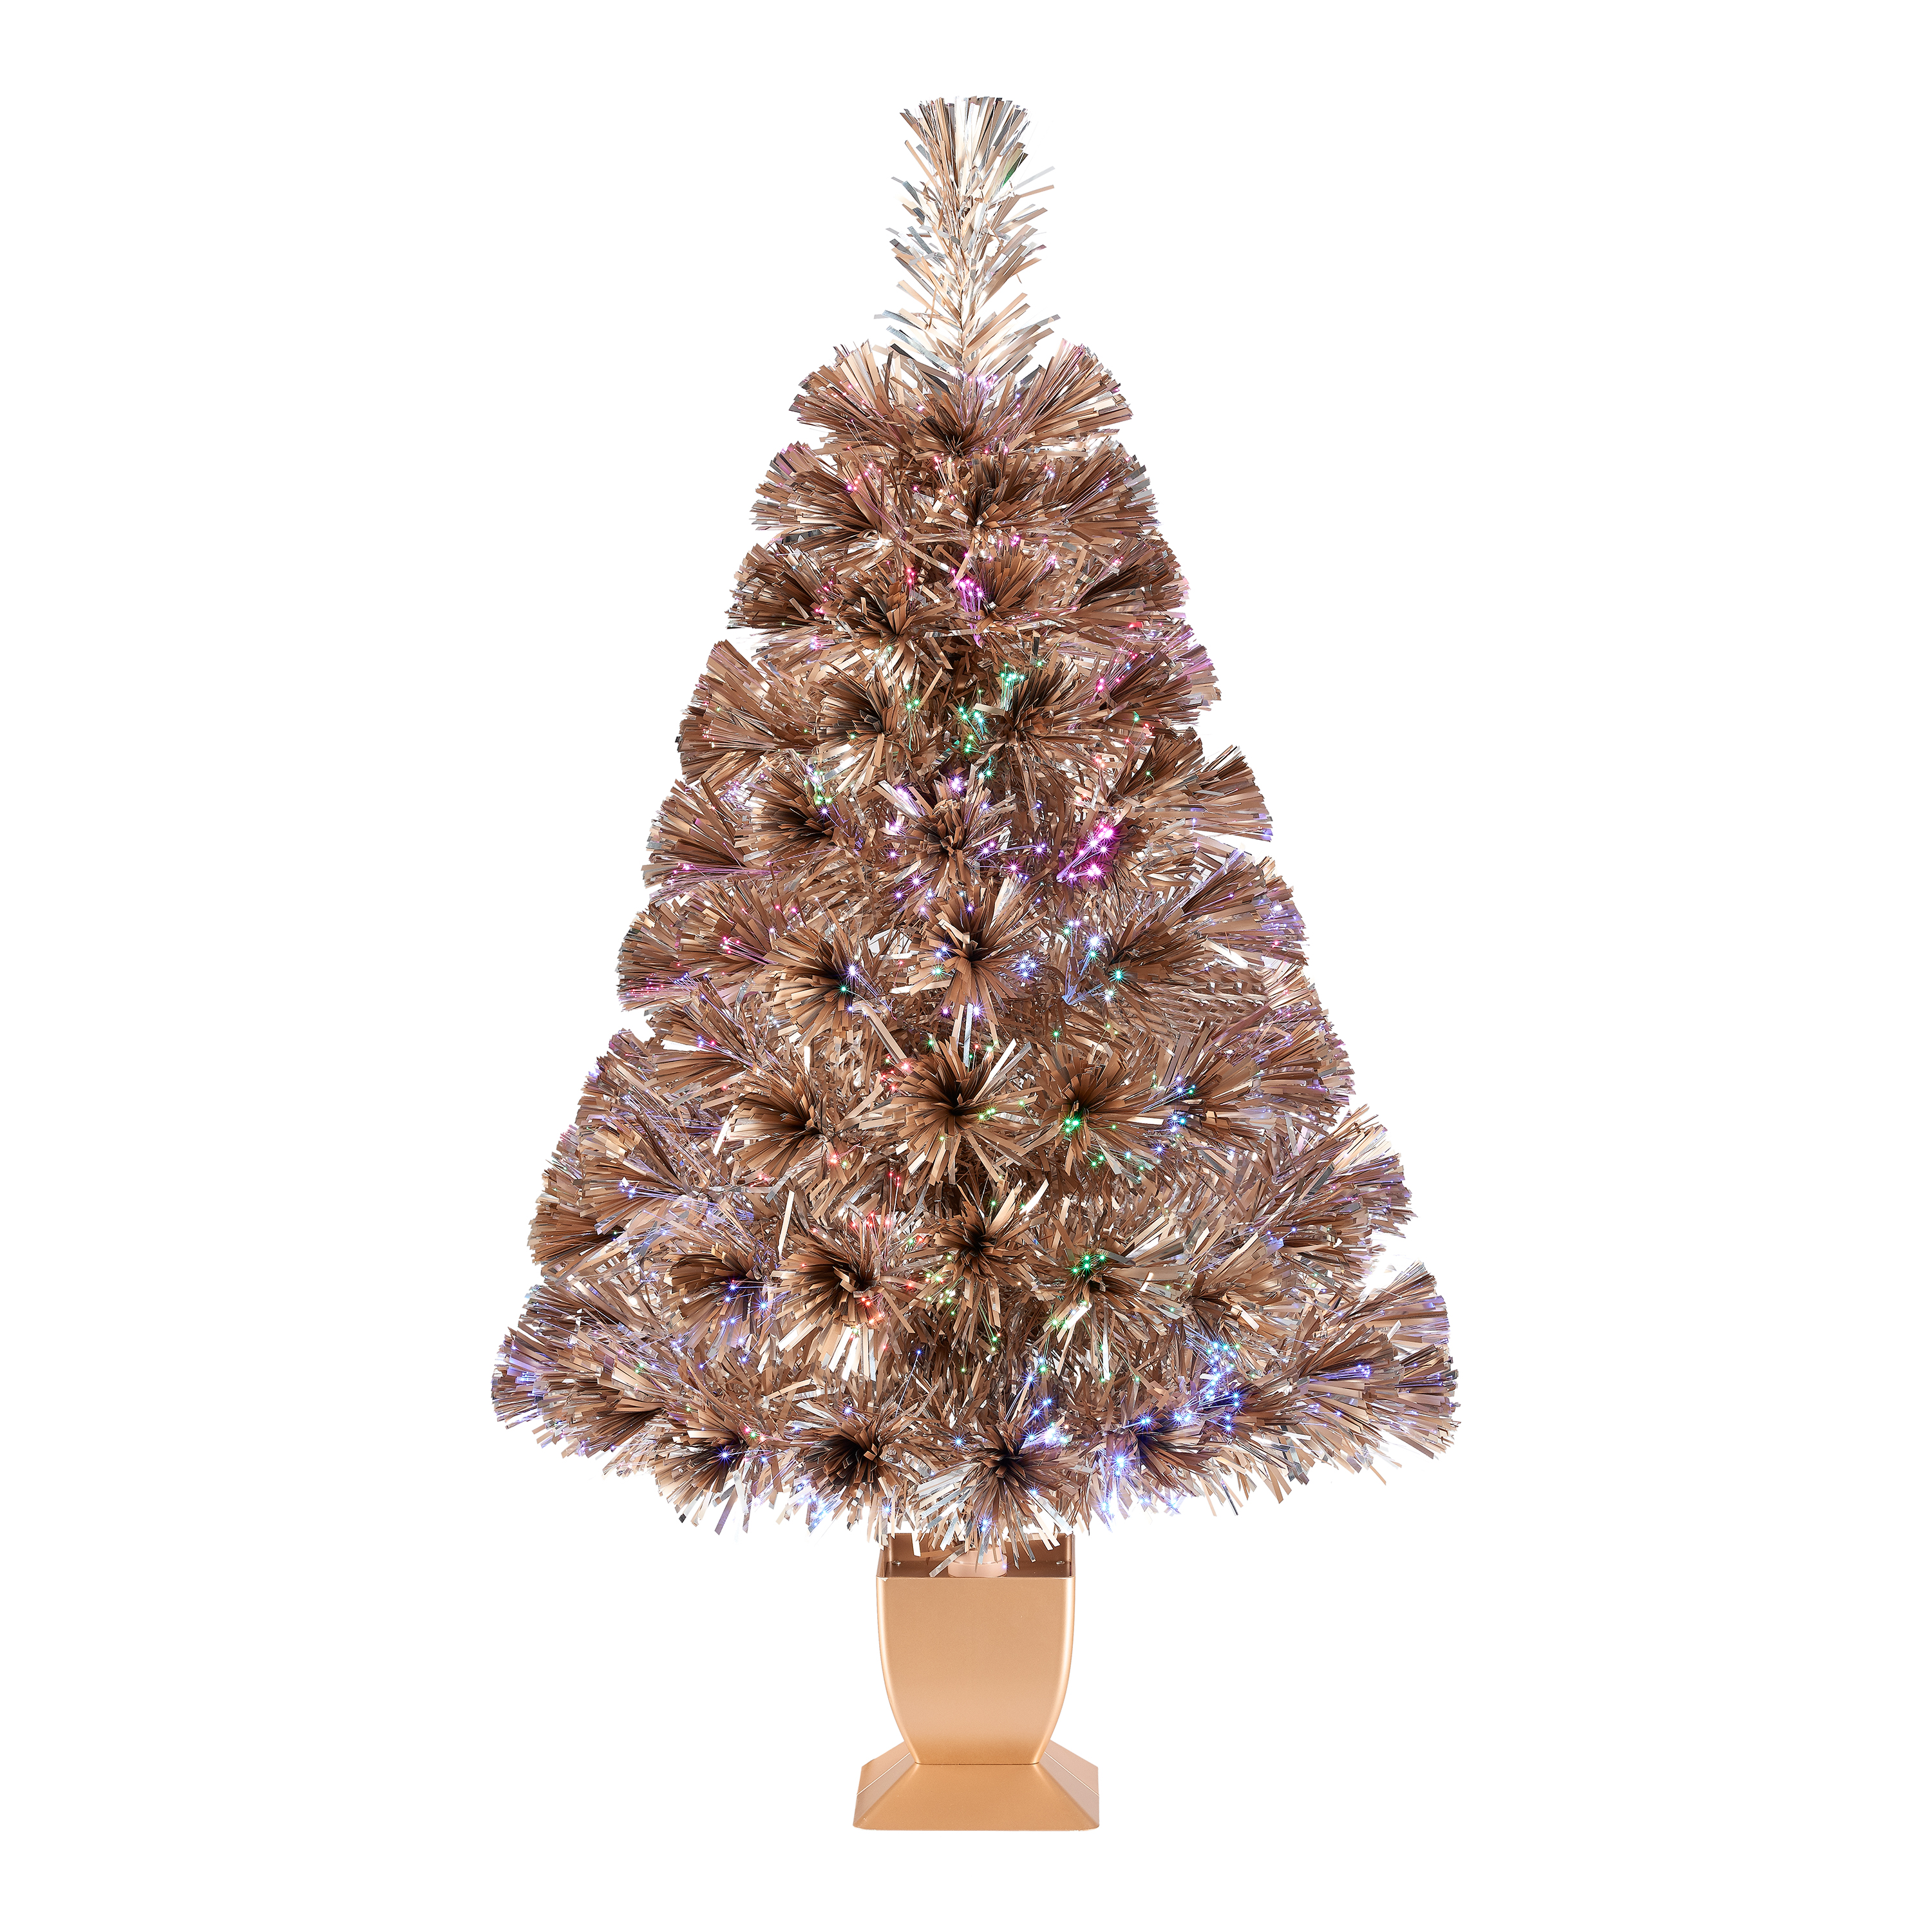 Tabletop Fibre Optic Christmas Tree: Holiday Time Pre-Lit Fiber Optic Artificial Tabletop